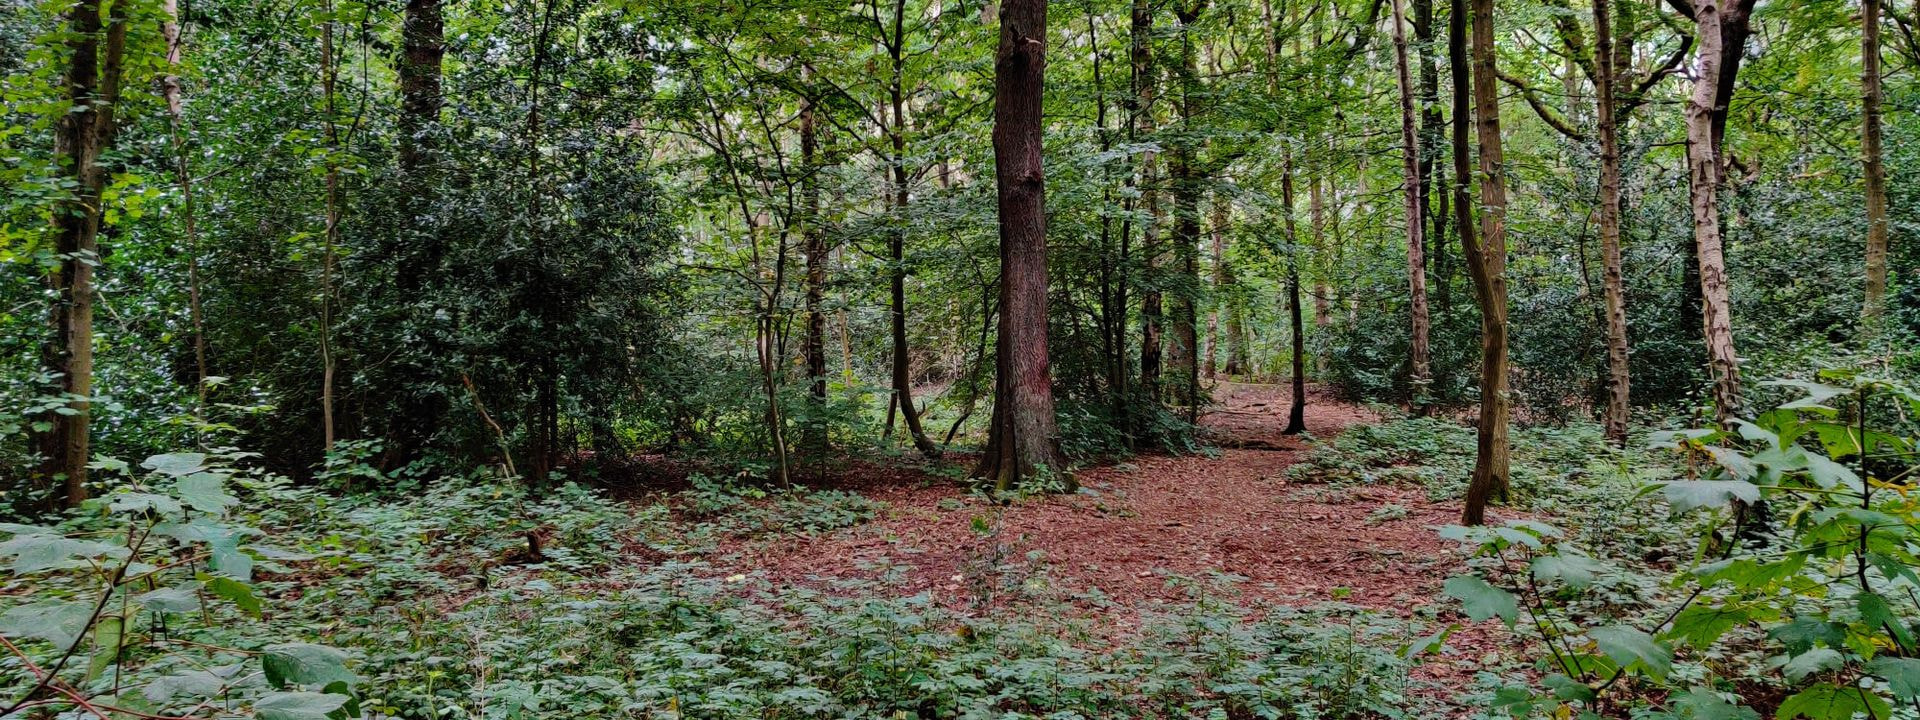 Middleton Wood trees and undergrowth